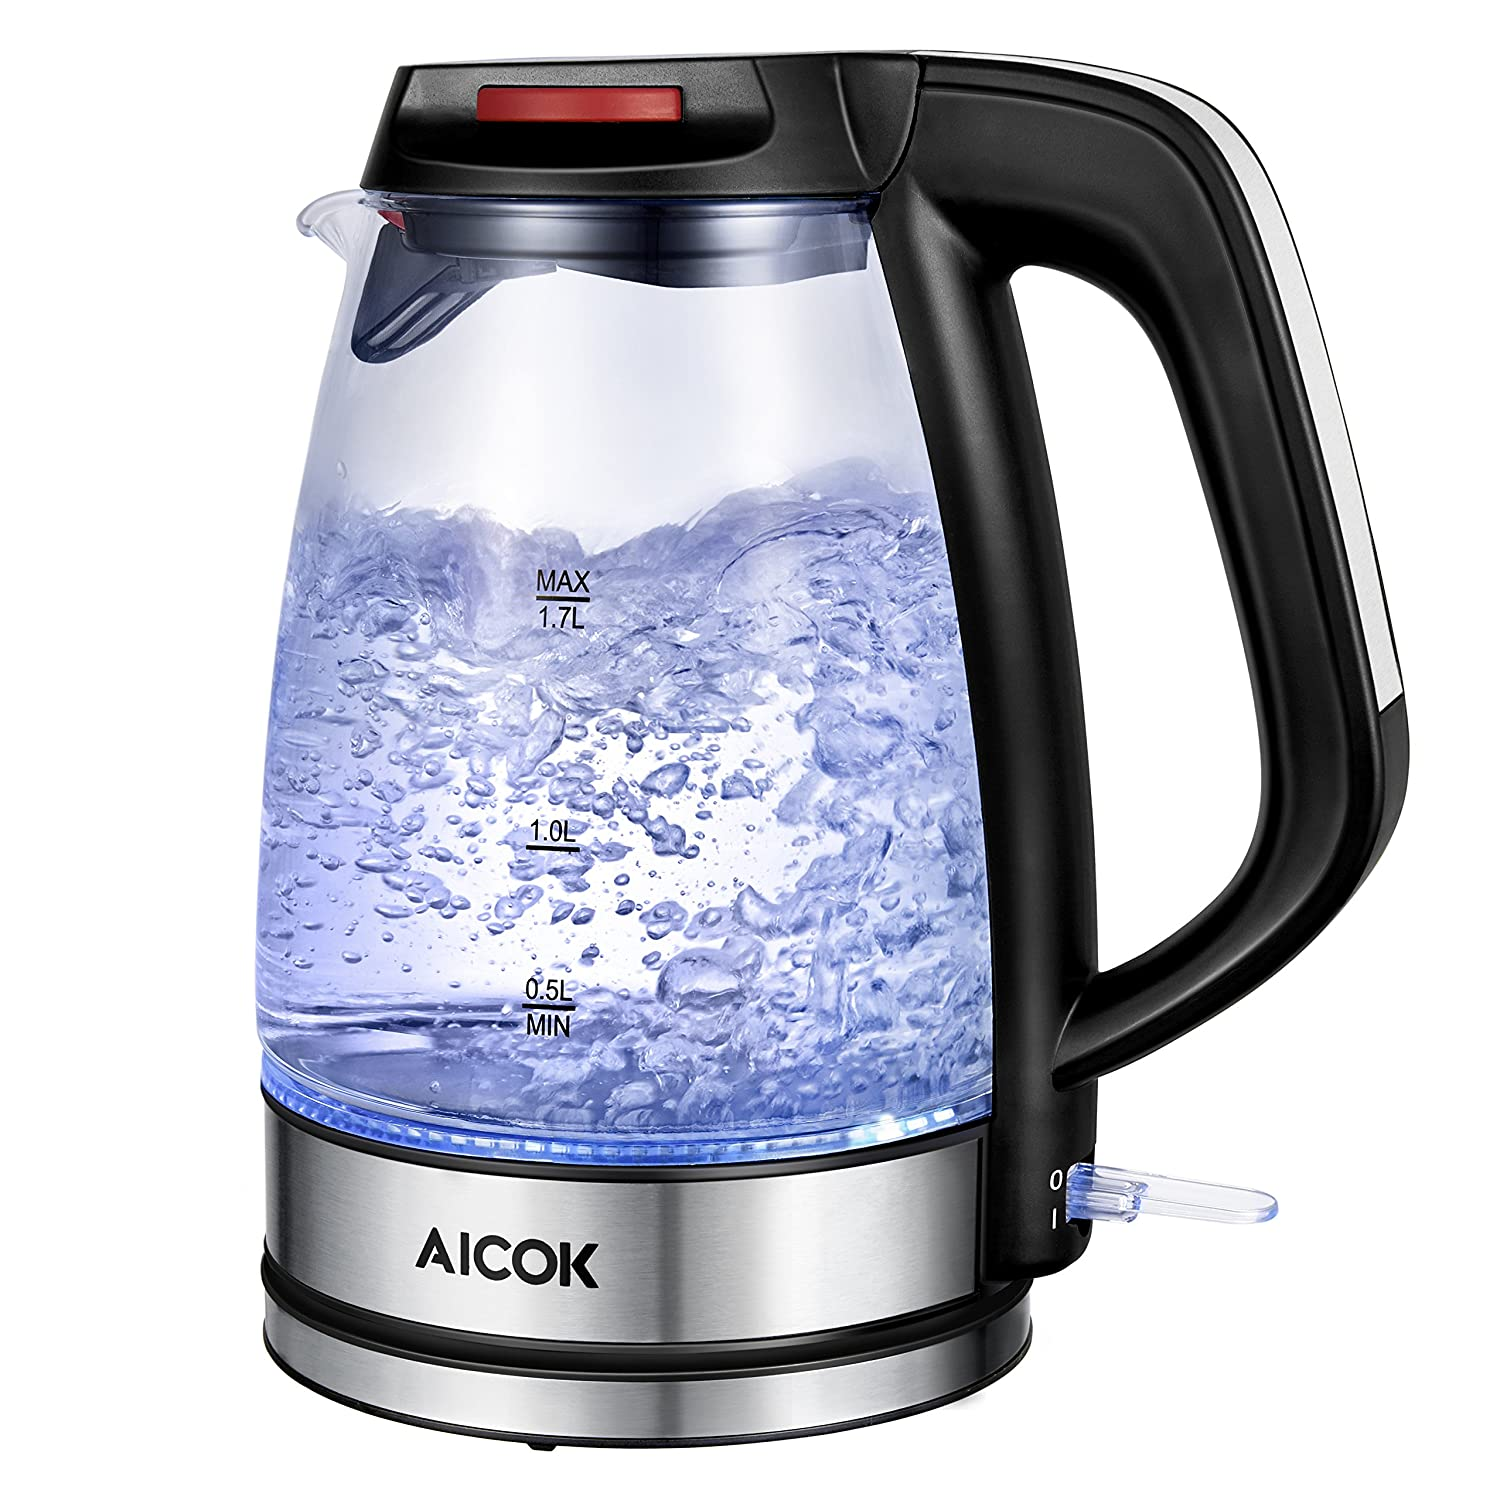 Aicok Electric Kettle SpeedBoil Glass Kettle BPA-Free Tea Kettle 1.7L 1500W Cordless Hot Water Tea Pot Boiler with LED Light,Auto Shut-Off and Boil-Dry Protection